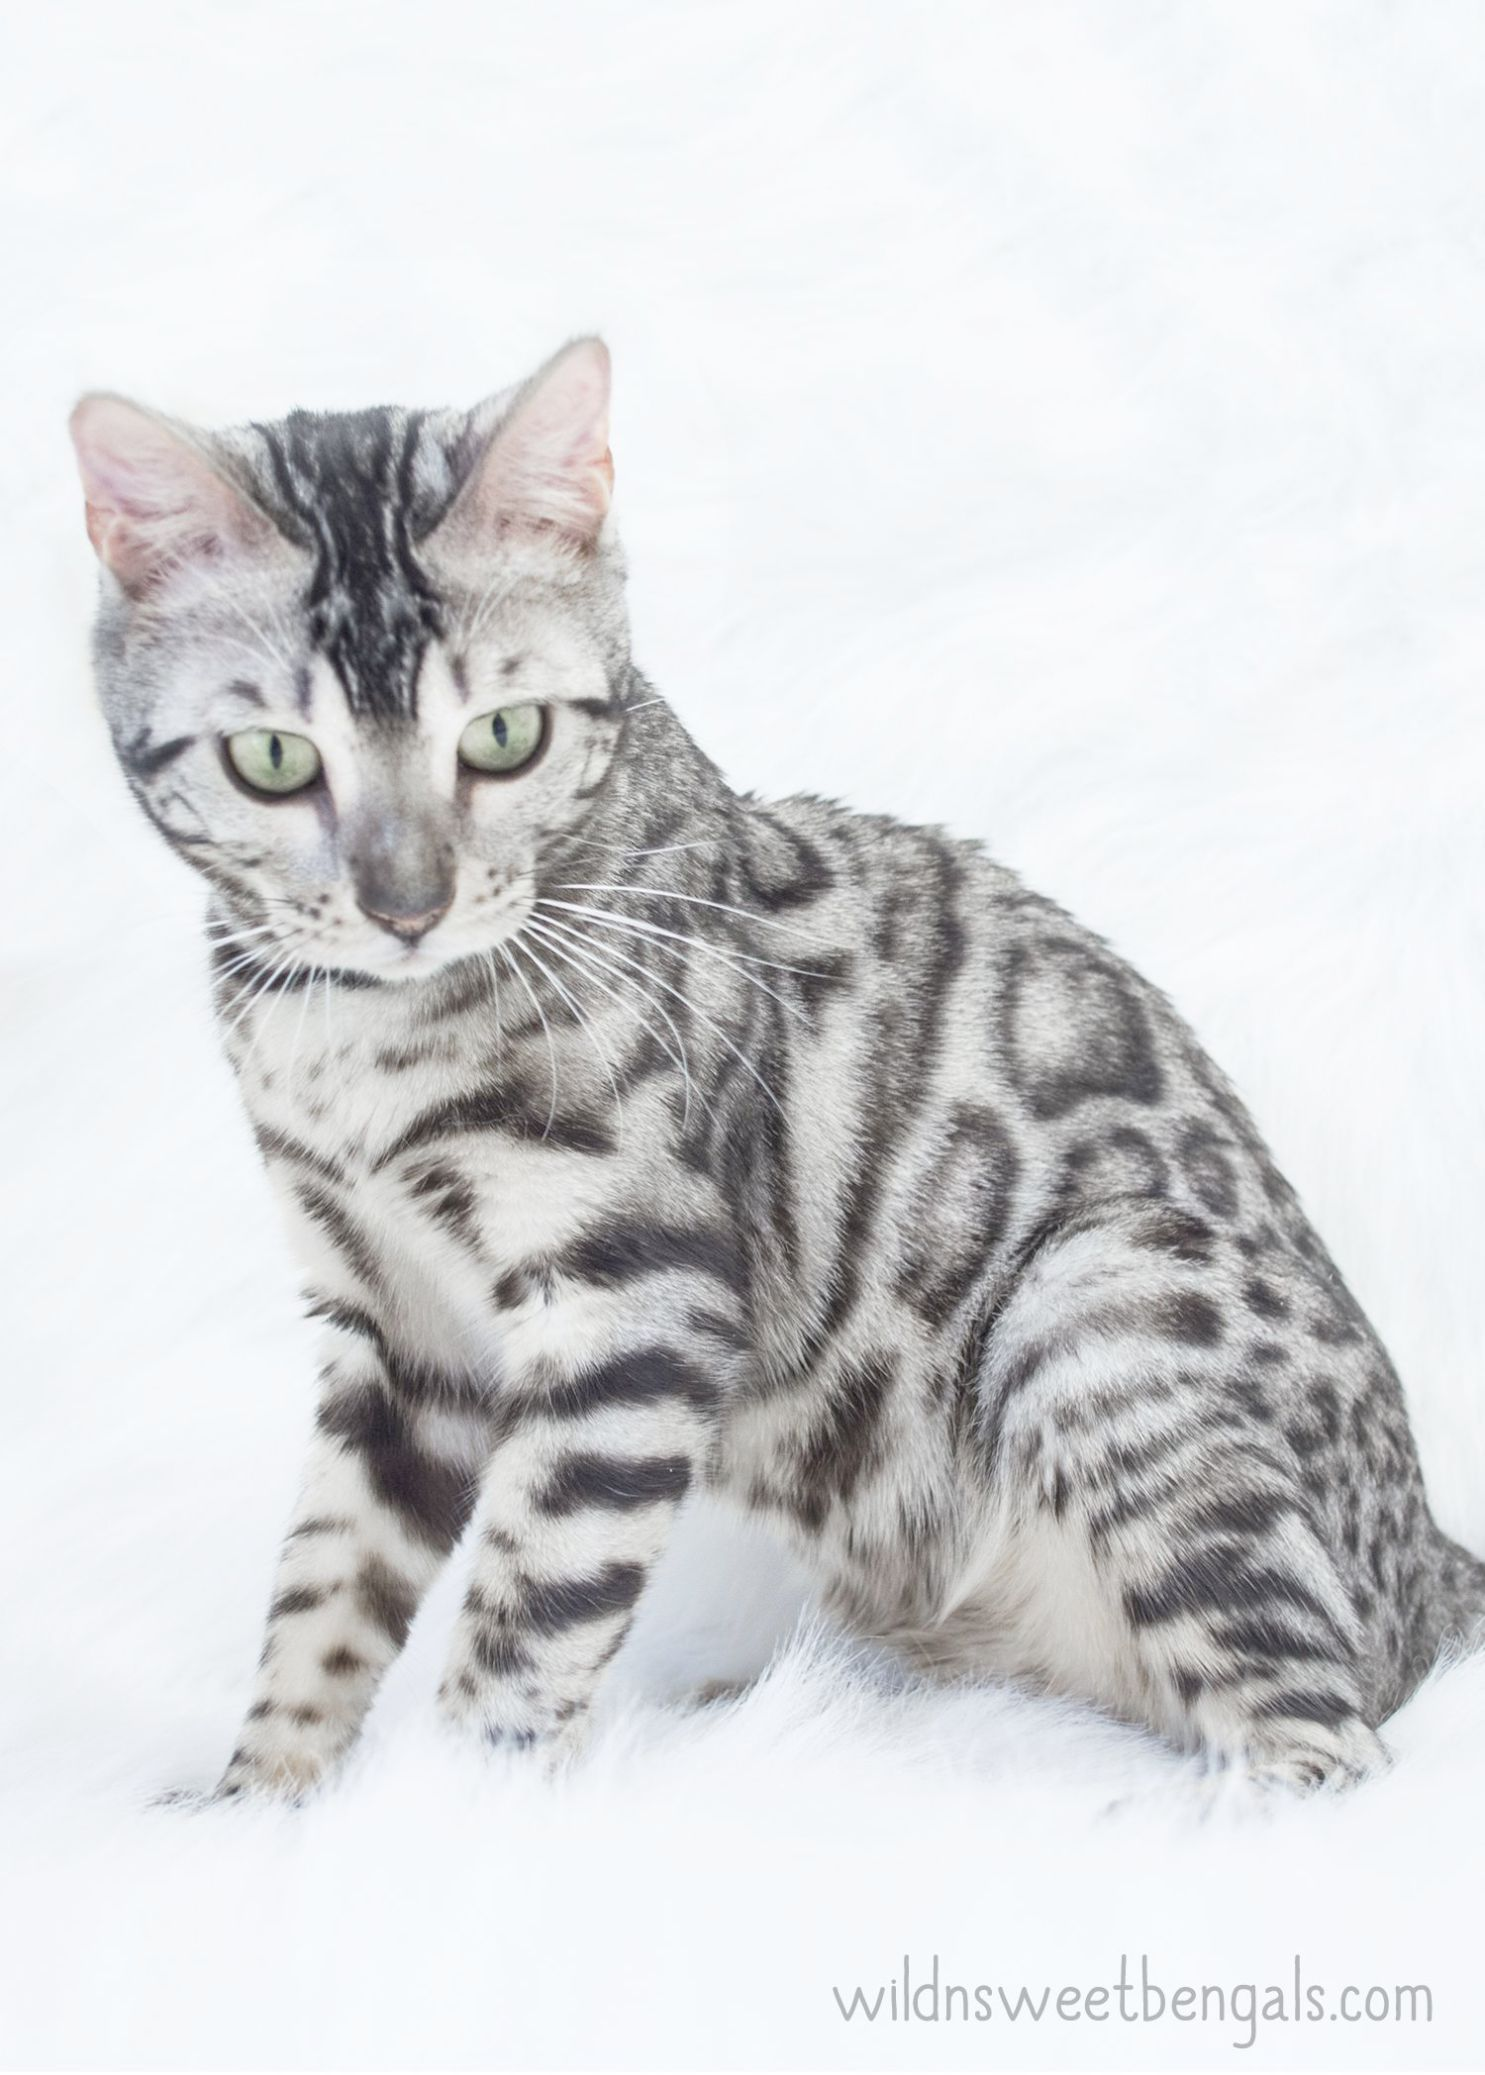 Cute Cat Gif Pinterest Cute Pictures Of Cats Cute Tabby Cats For Sale Silver Bengal Cat Bengal Kitten Bengal Cat